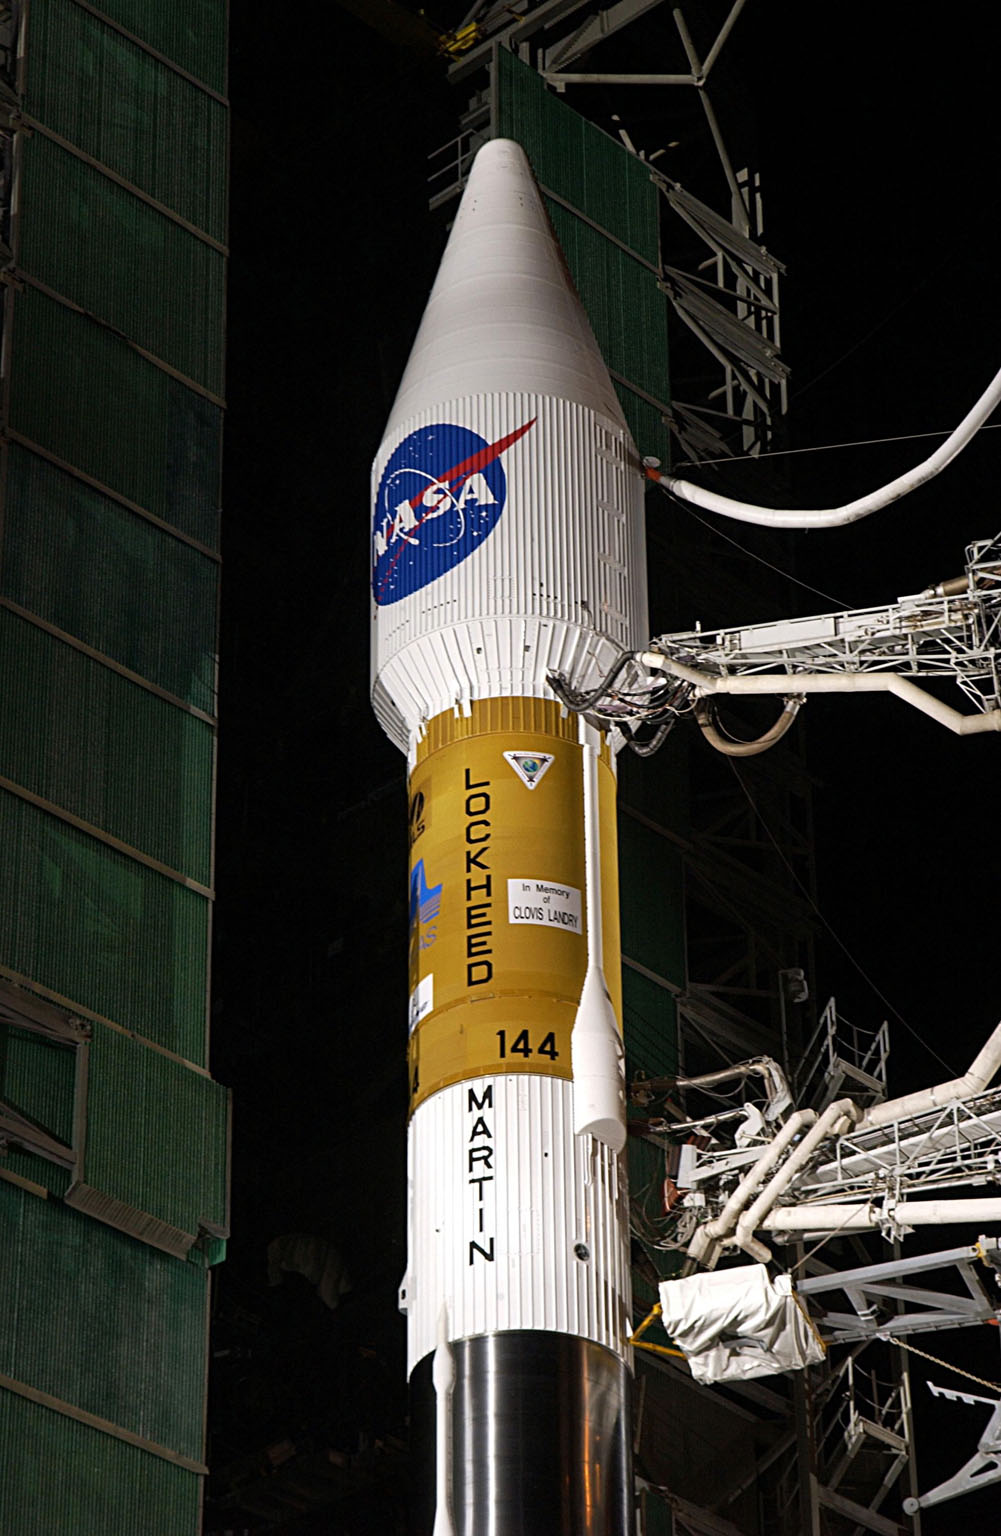 KENNEDY SPACE CENTER, FLA. - At Launch Complex 36-A, Cape Canaveral Air Force Station, the mobile service tower is rolled back to reveal the encapsulated TDRS-J satellite aboard an Atlas IIA vehicle awaiting launch on Dec. 4. The launch window is 9:42 to 10:22 p.m. EST. TDRS-J, the third in a series of telemetry satellites, will help replenish the current constellation of geosynchronous TDRS satellites that are the primary source of space-to-ground voice, data and telemetry for the Space Shuttle. The satellites also provide communications with the International Space Station and scientific spacecraft in low-Earth orbit such as the Hubble Space Telescope. This new advanced series of satellites will extend the availability of TDRS communications services until about 2017.